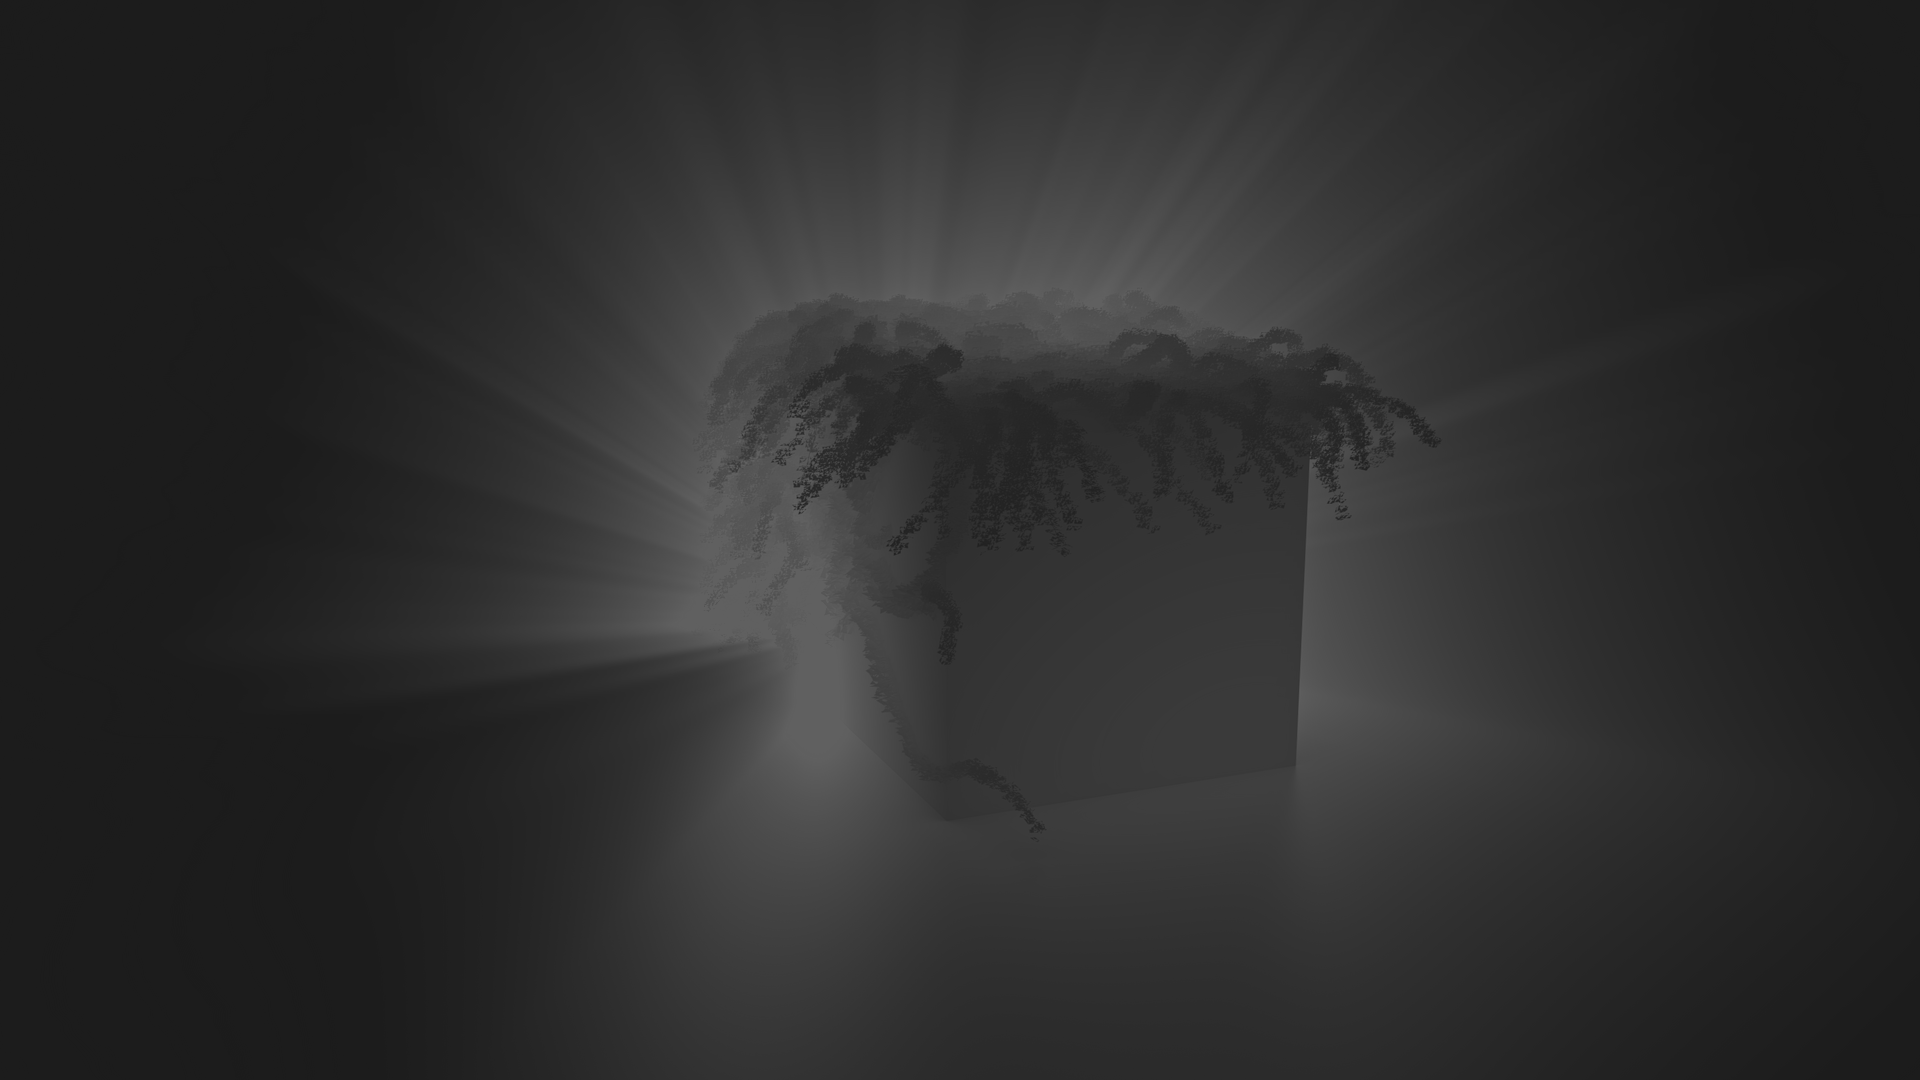 Messing around with Volumetric Light and Ivy's